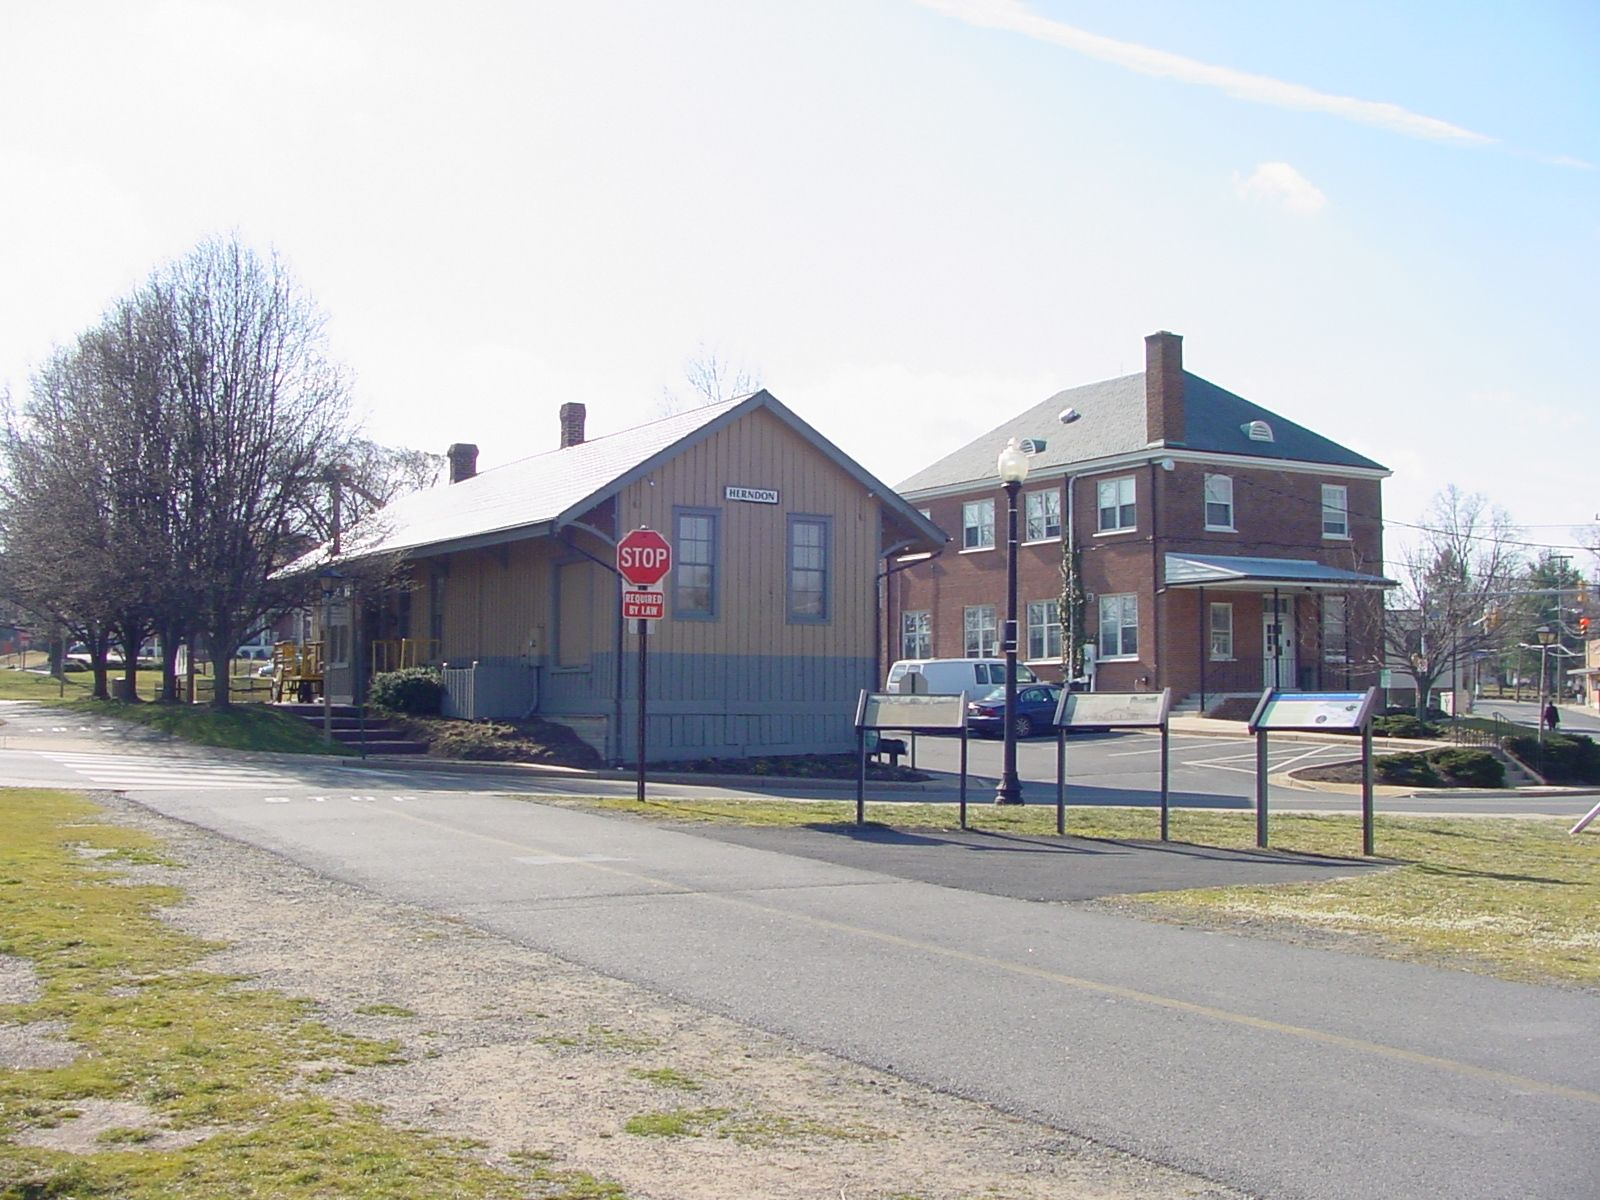 Herndon Station With the Three Markers in the Foreground